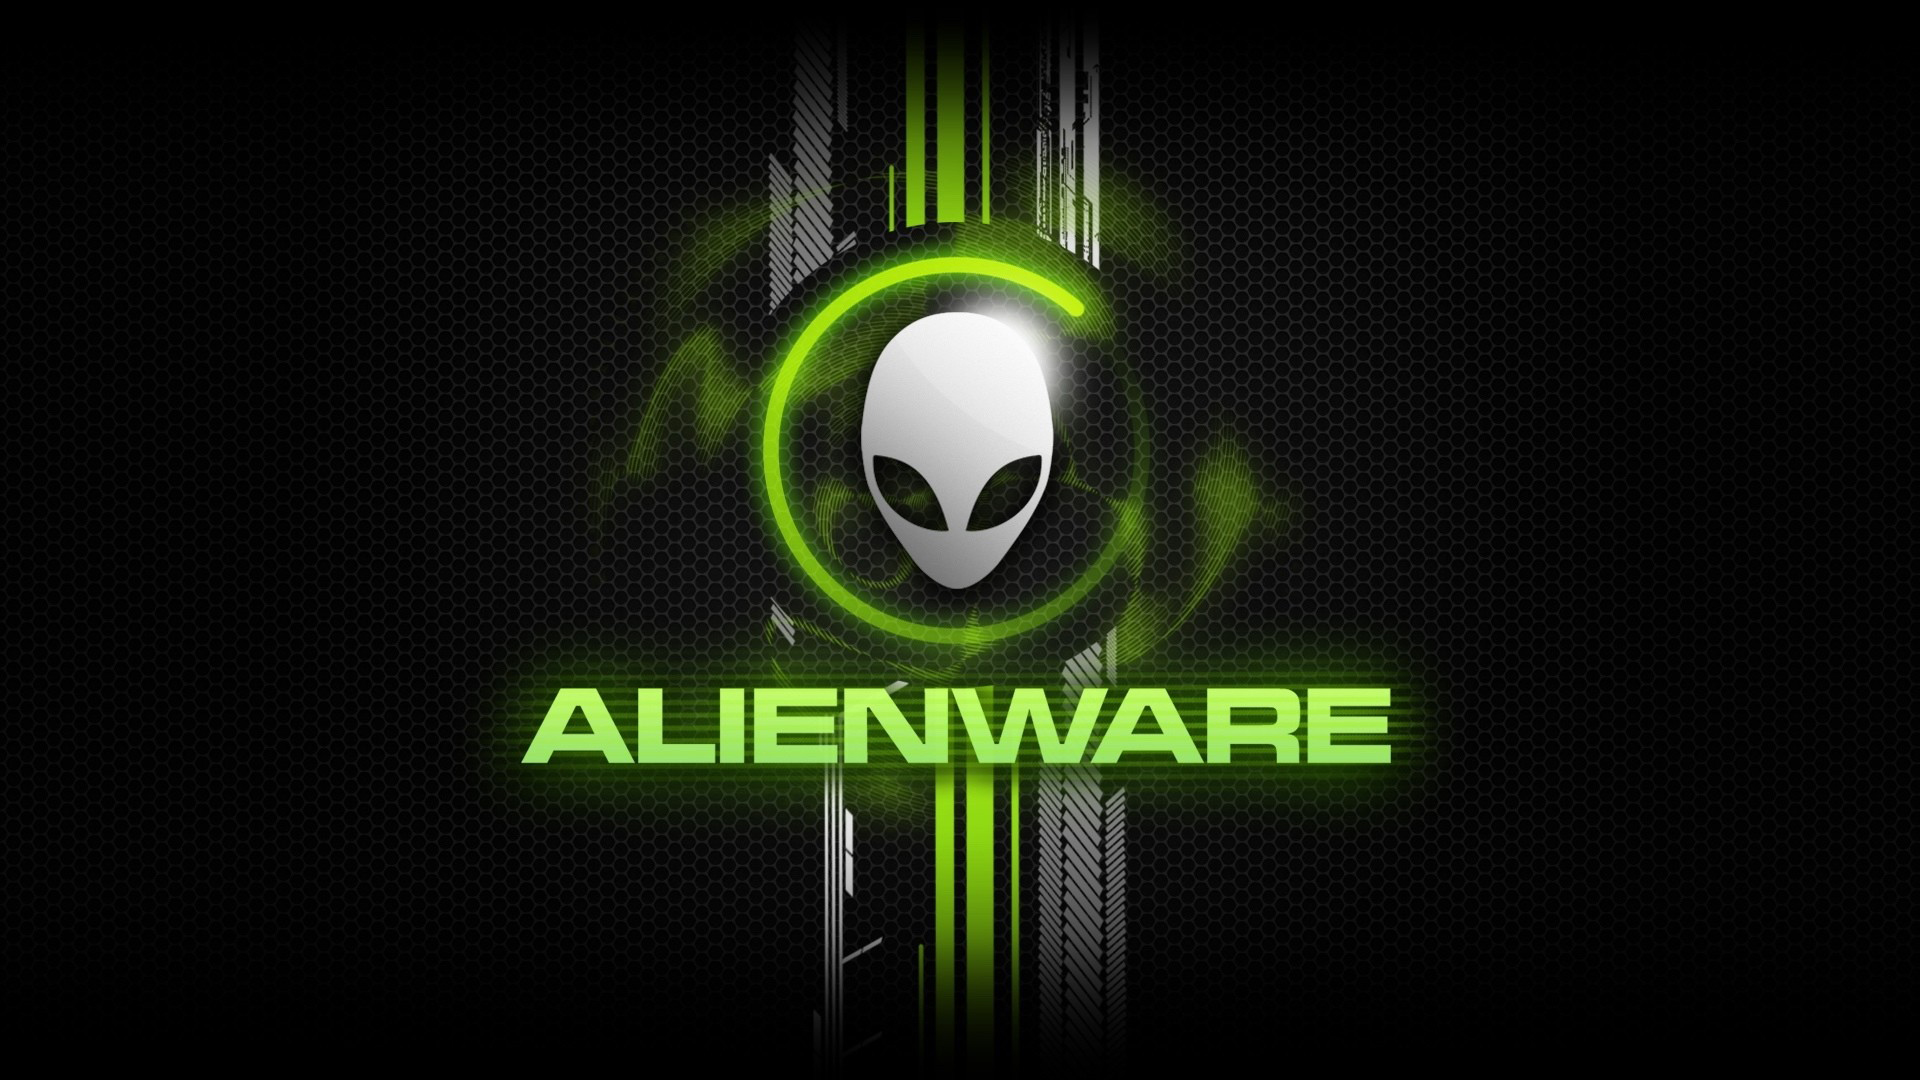 alienware wallpaper green hd - photo #24